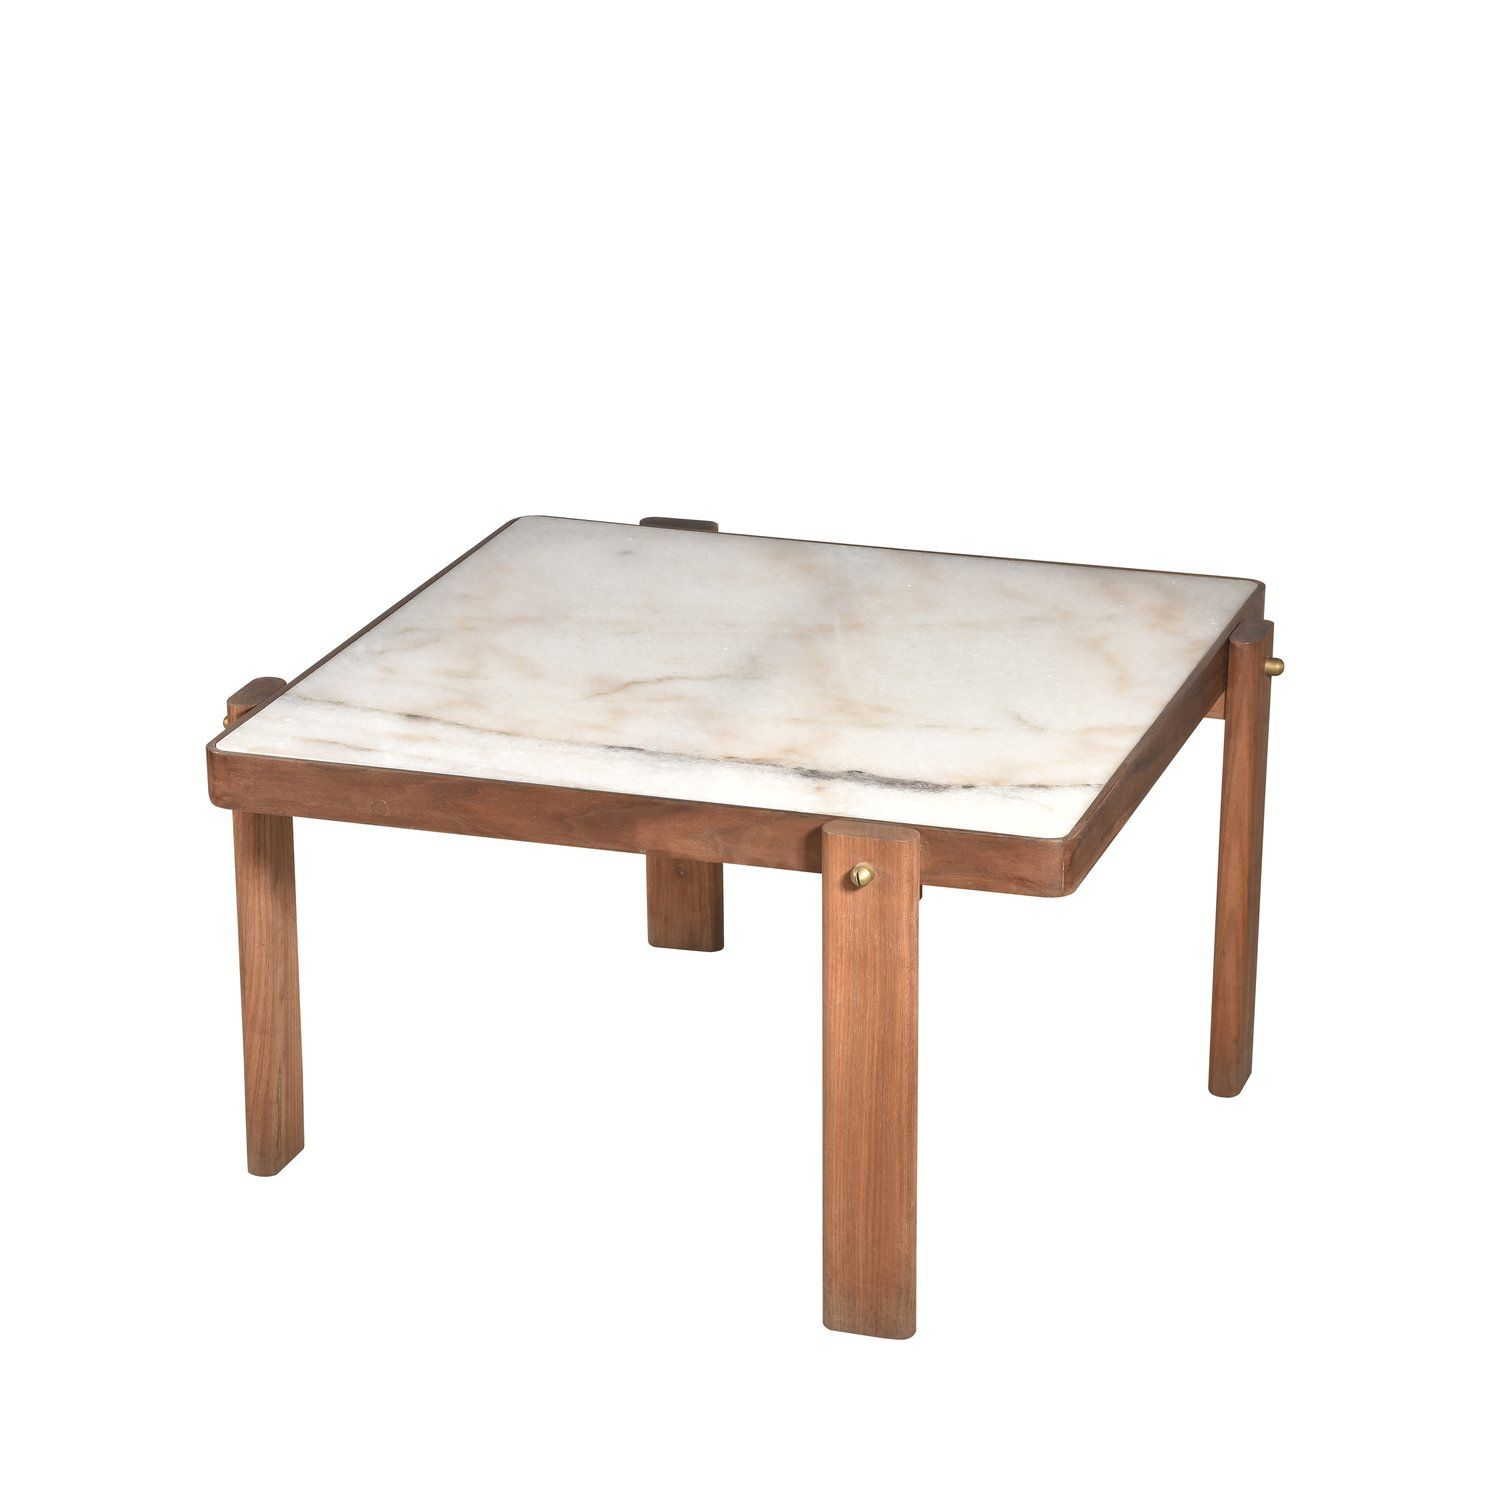 Marble Top Coffee Table Is Here Square Coffee Table With Marble Top American Walnut Frame Mid Cent Coffee Table Marble Top Coffee Table Marble Tables Design [ 1500 x 1500 Pixel ]